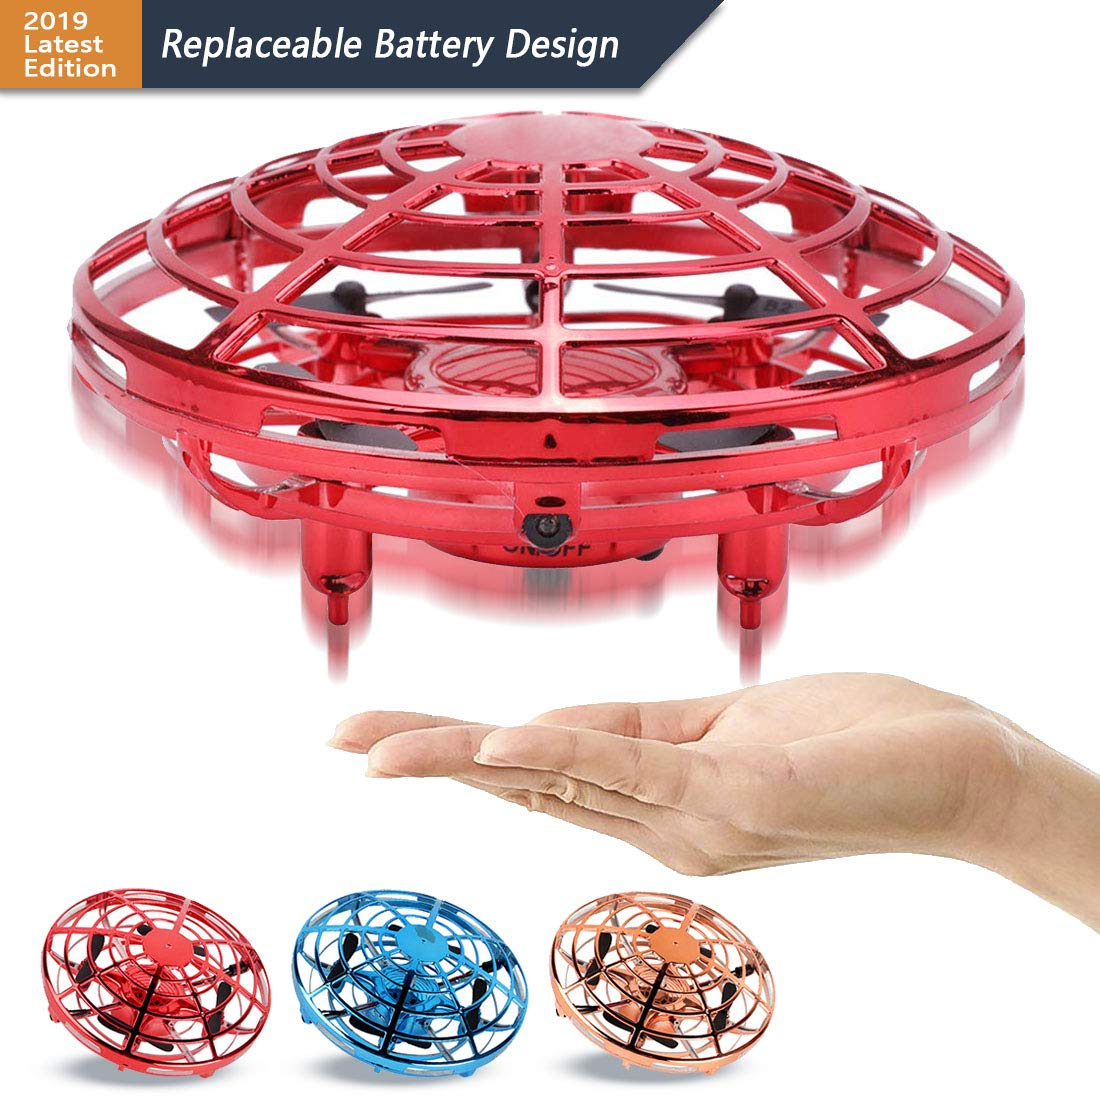 AURISON Flying Ball Drones, Hand-Controlled Drone Quadcopter Flying Toys Interactive Infrared Induction Helicopter Ball with 360°Rotating and Flashing LED Lights for Kids or Adults Gifts(Red)